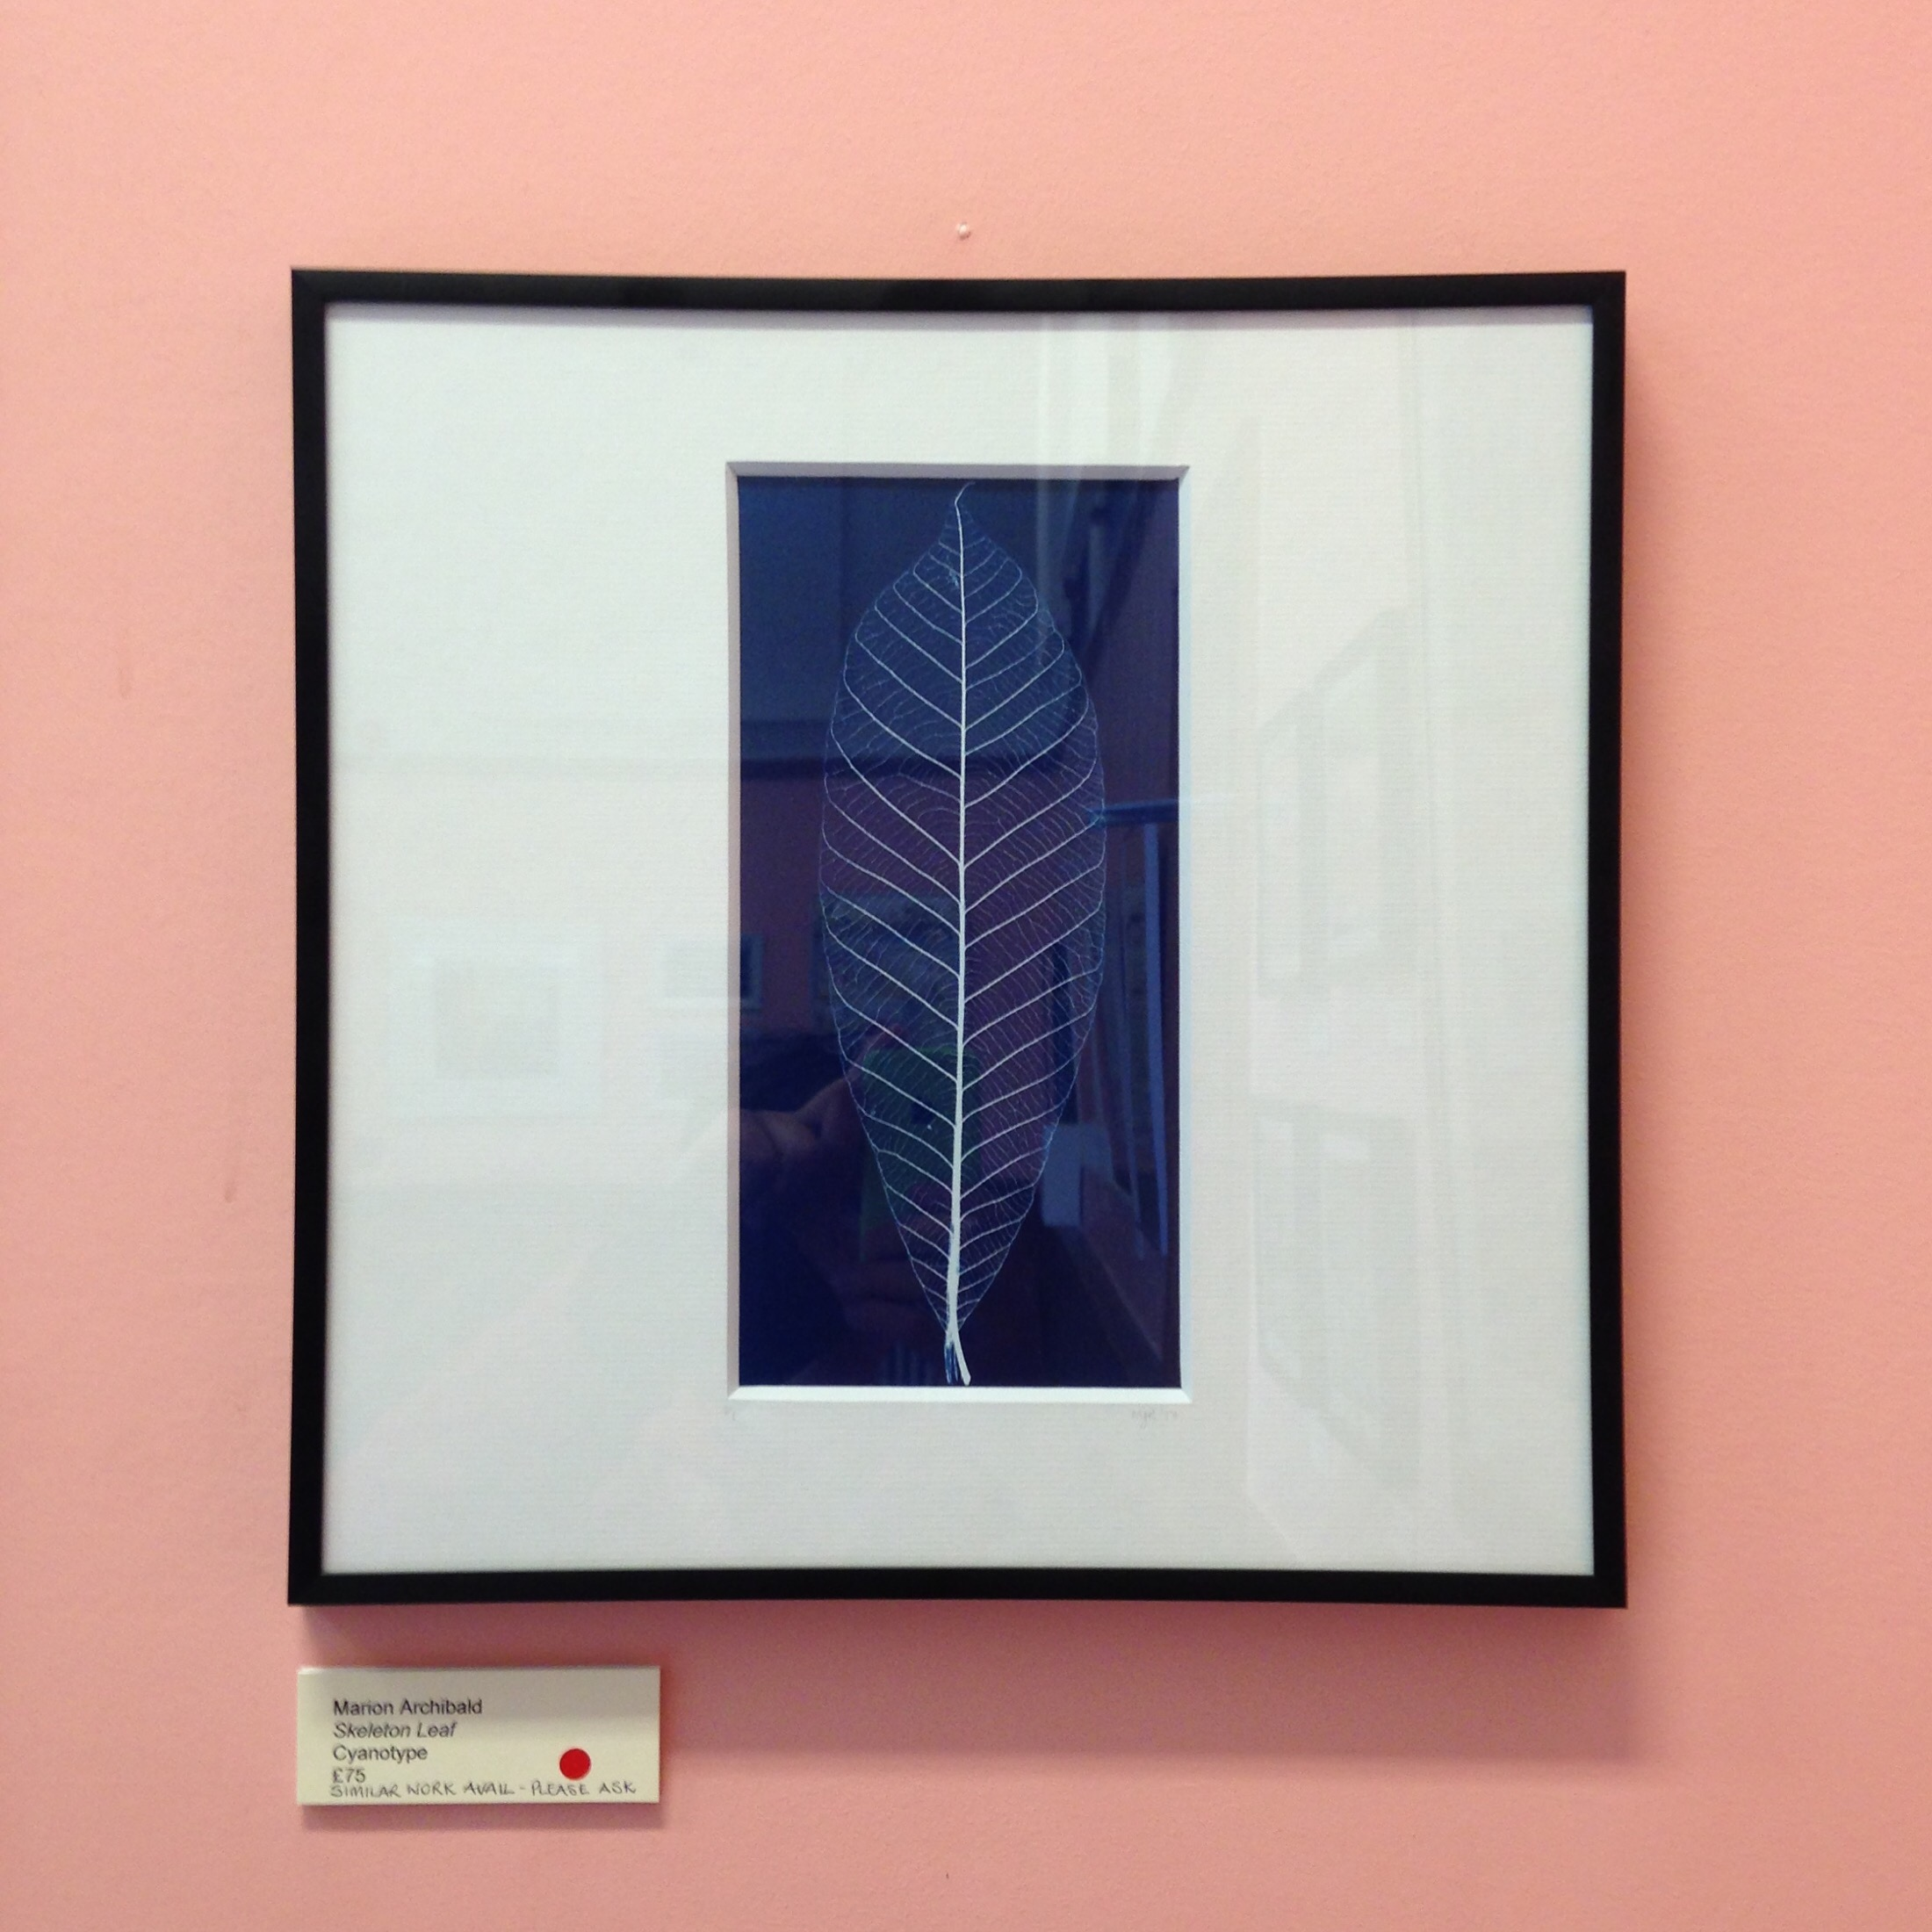 Kinghorn Artists Annual Exhibition - Marion Archibald - Cyanotypes